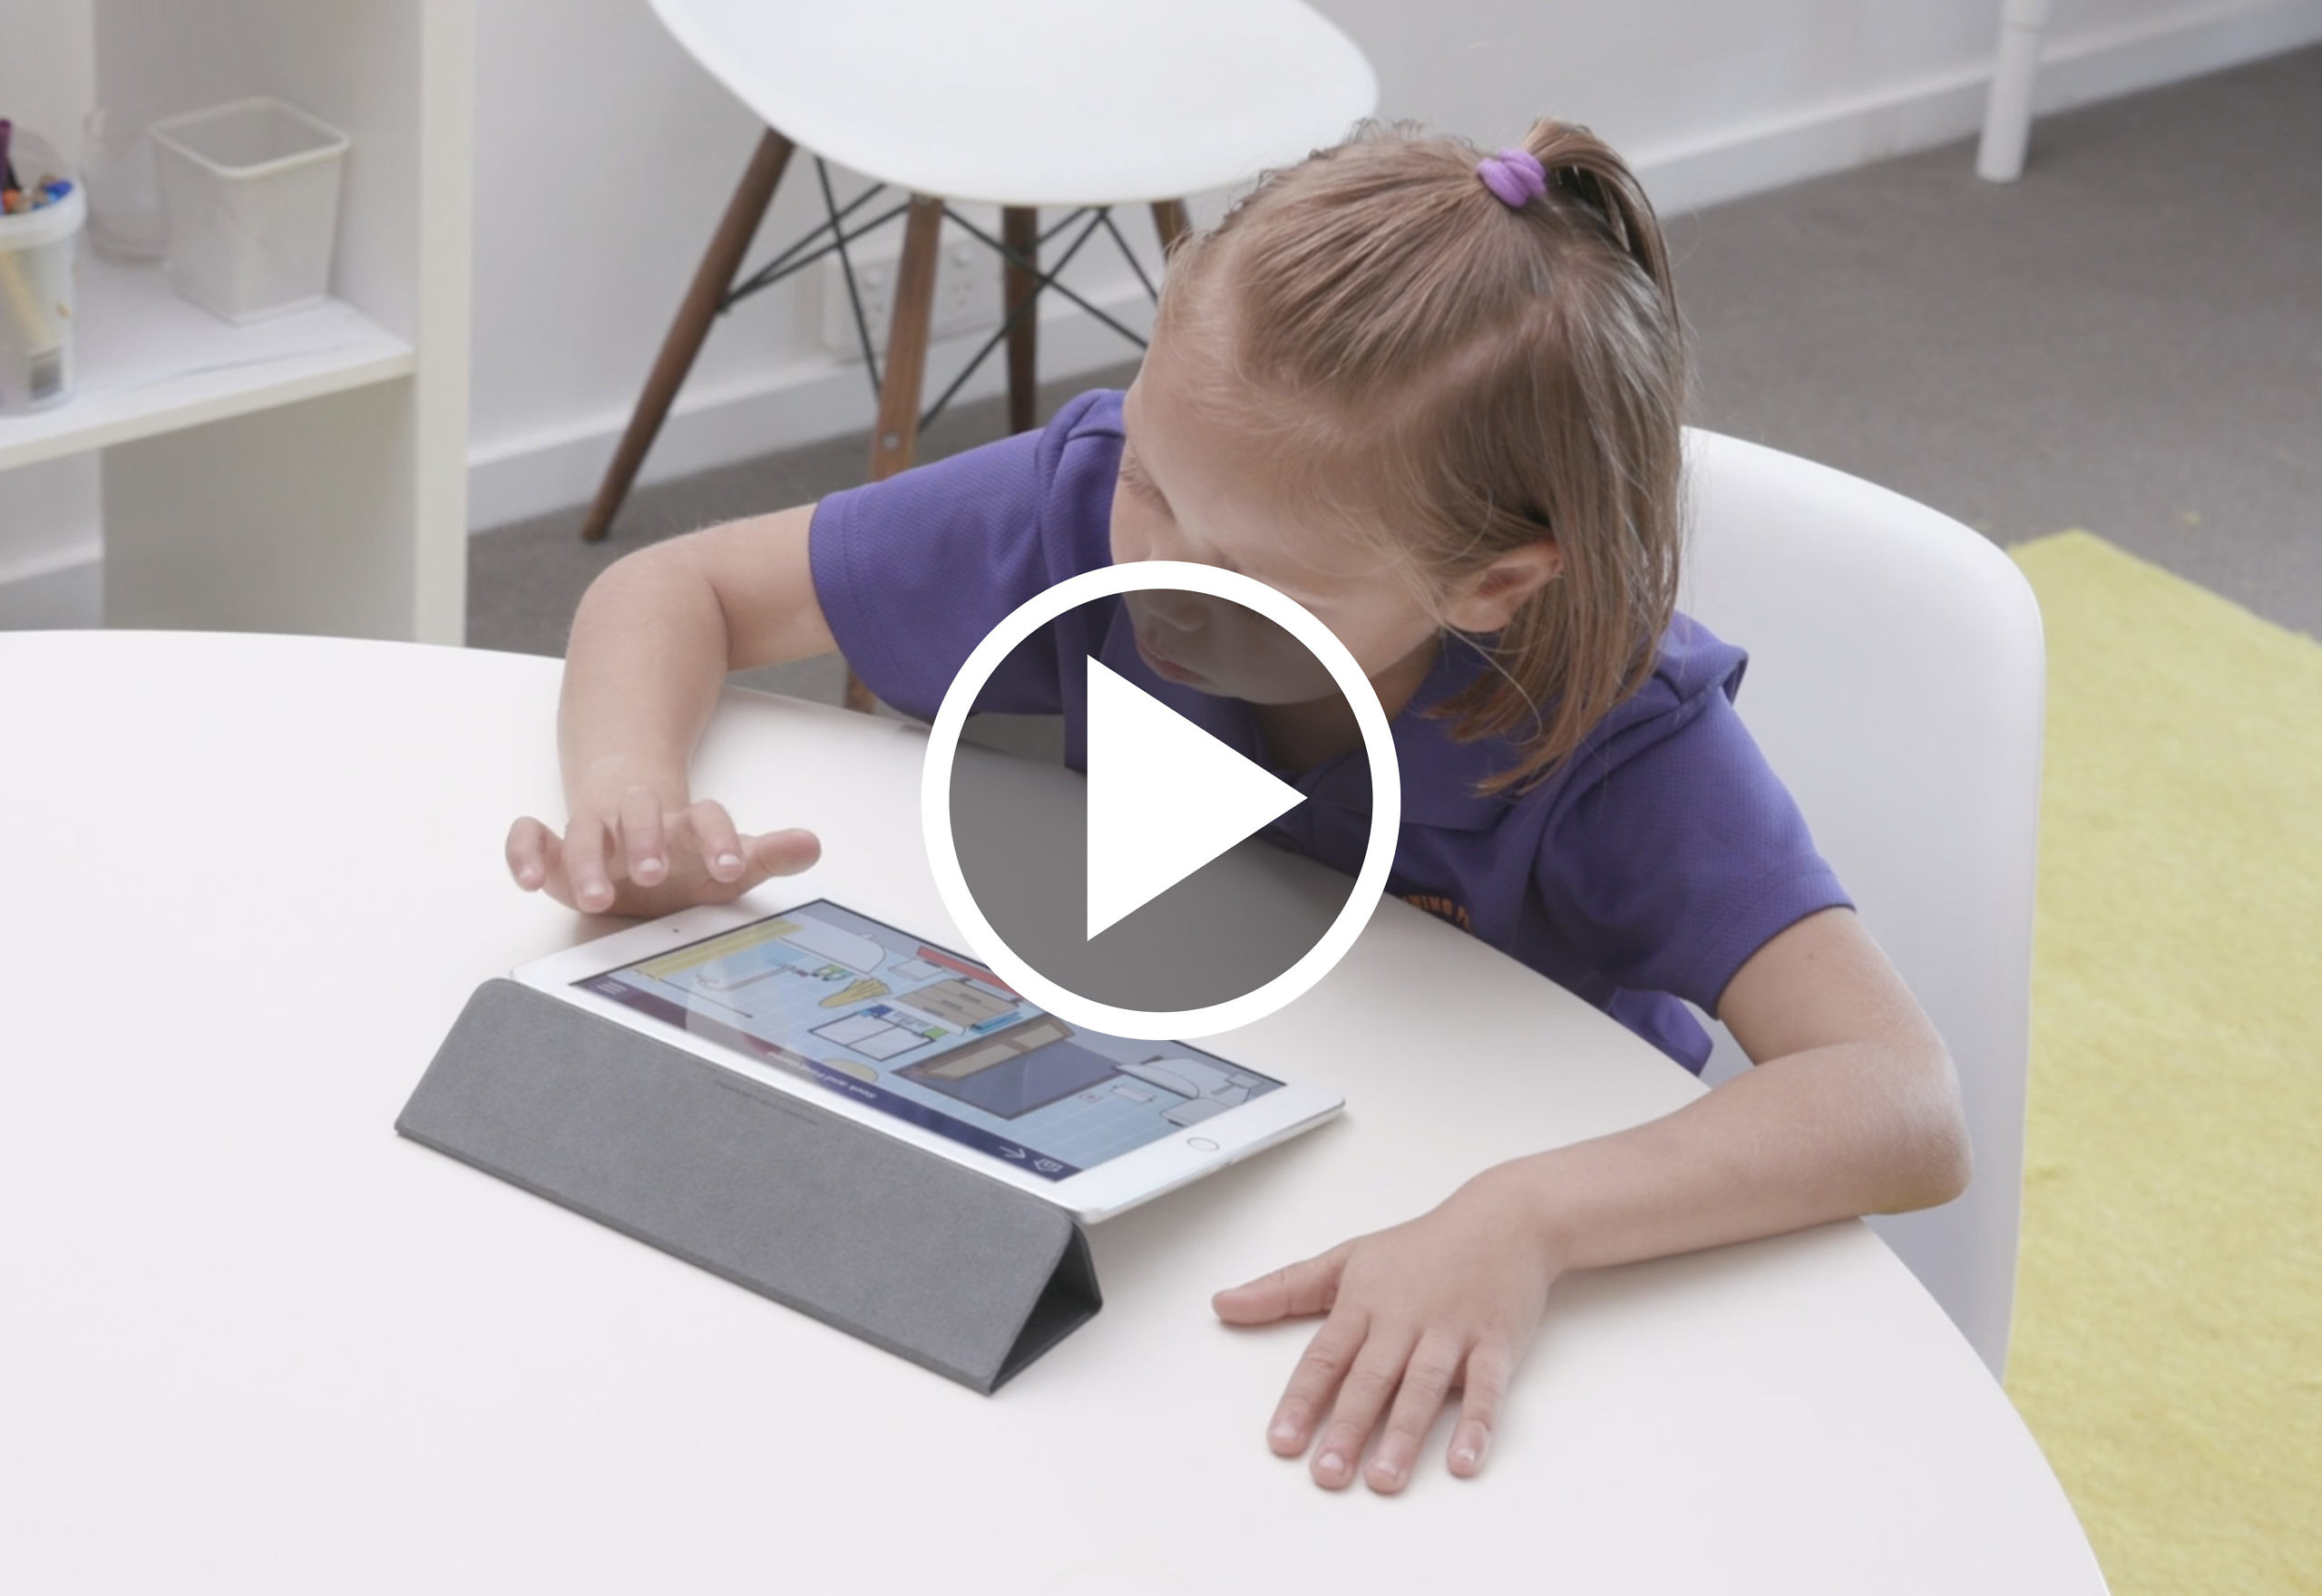 Young girl using the SECCA App on an ipad at a table